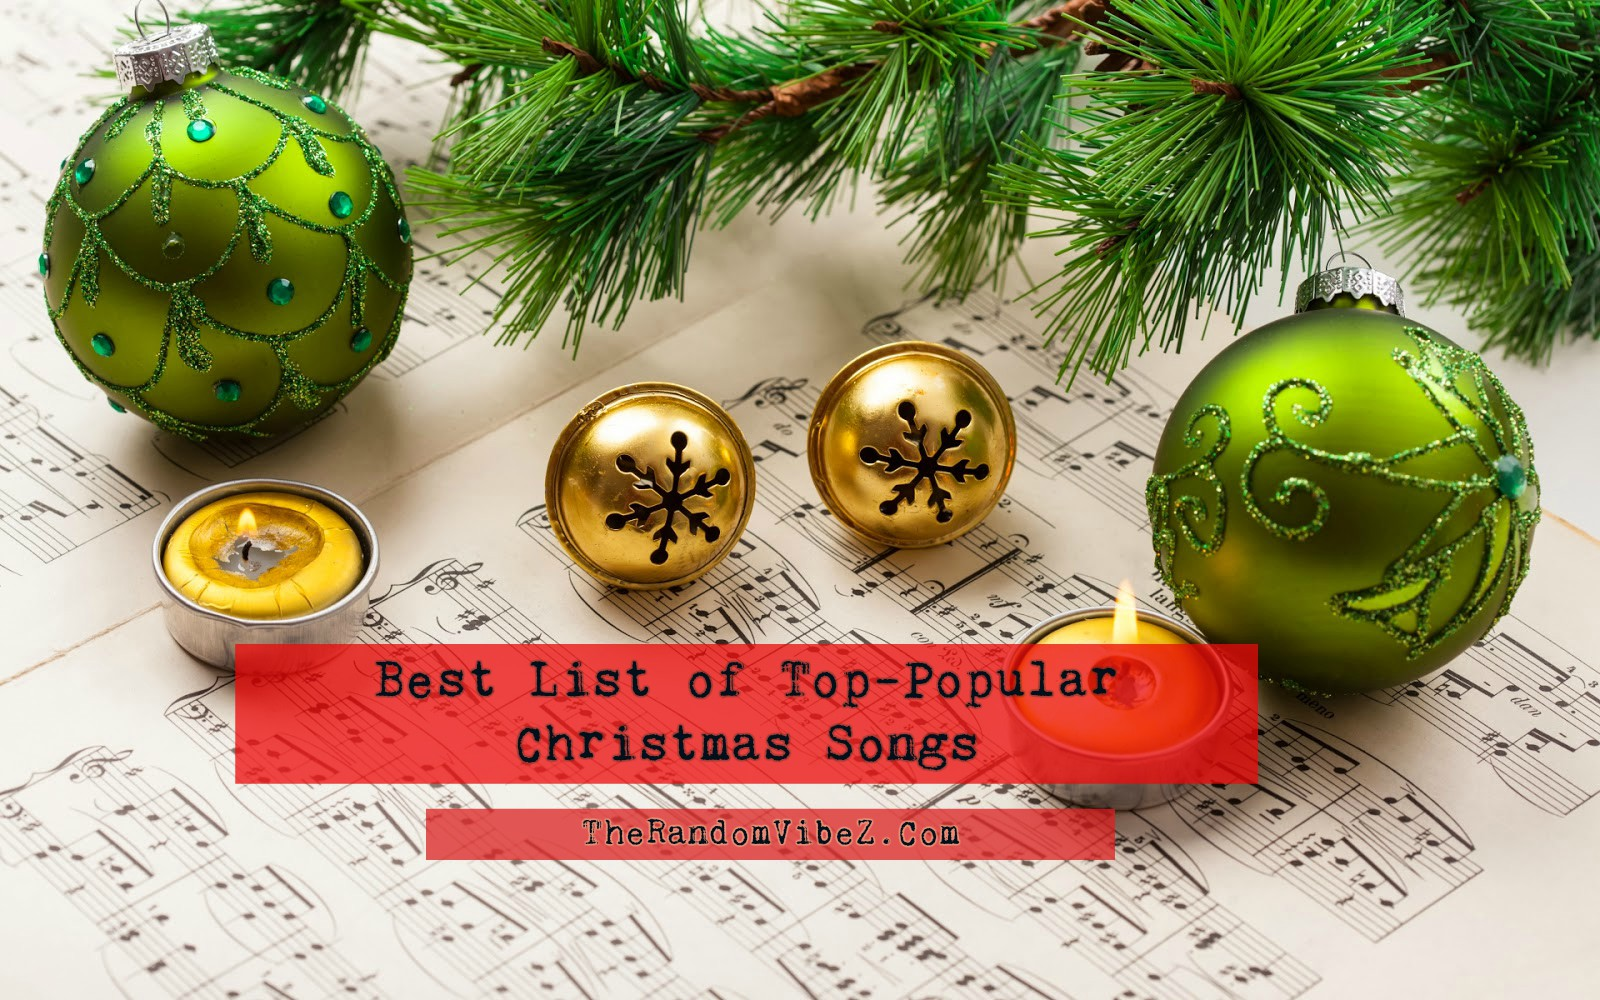 Best List of Top-Popular Christmas Songs